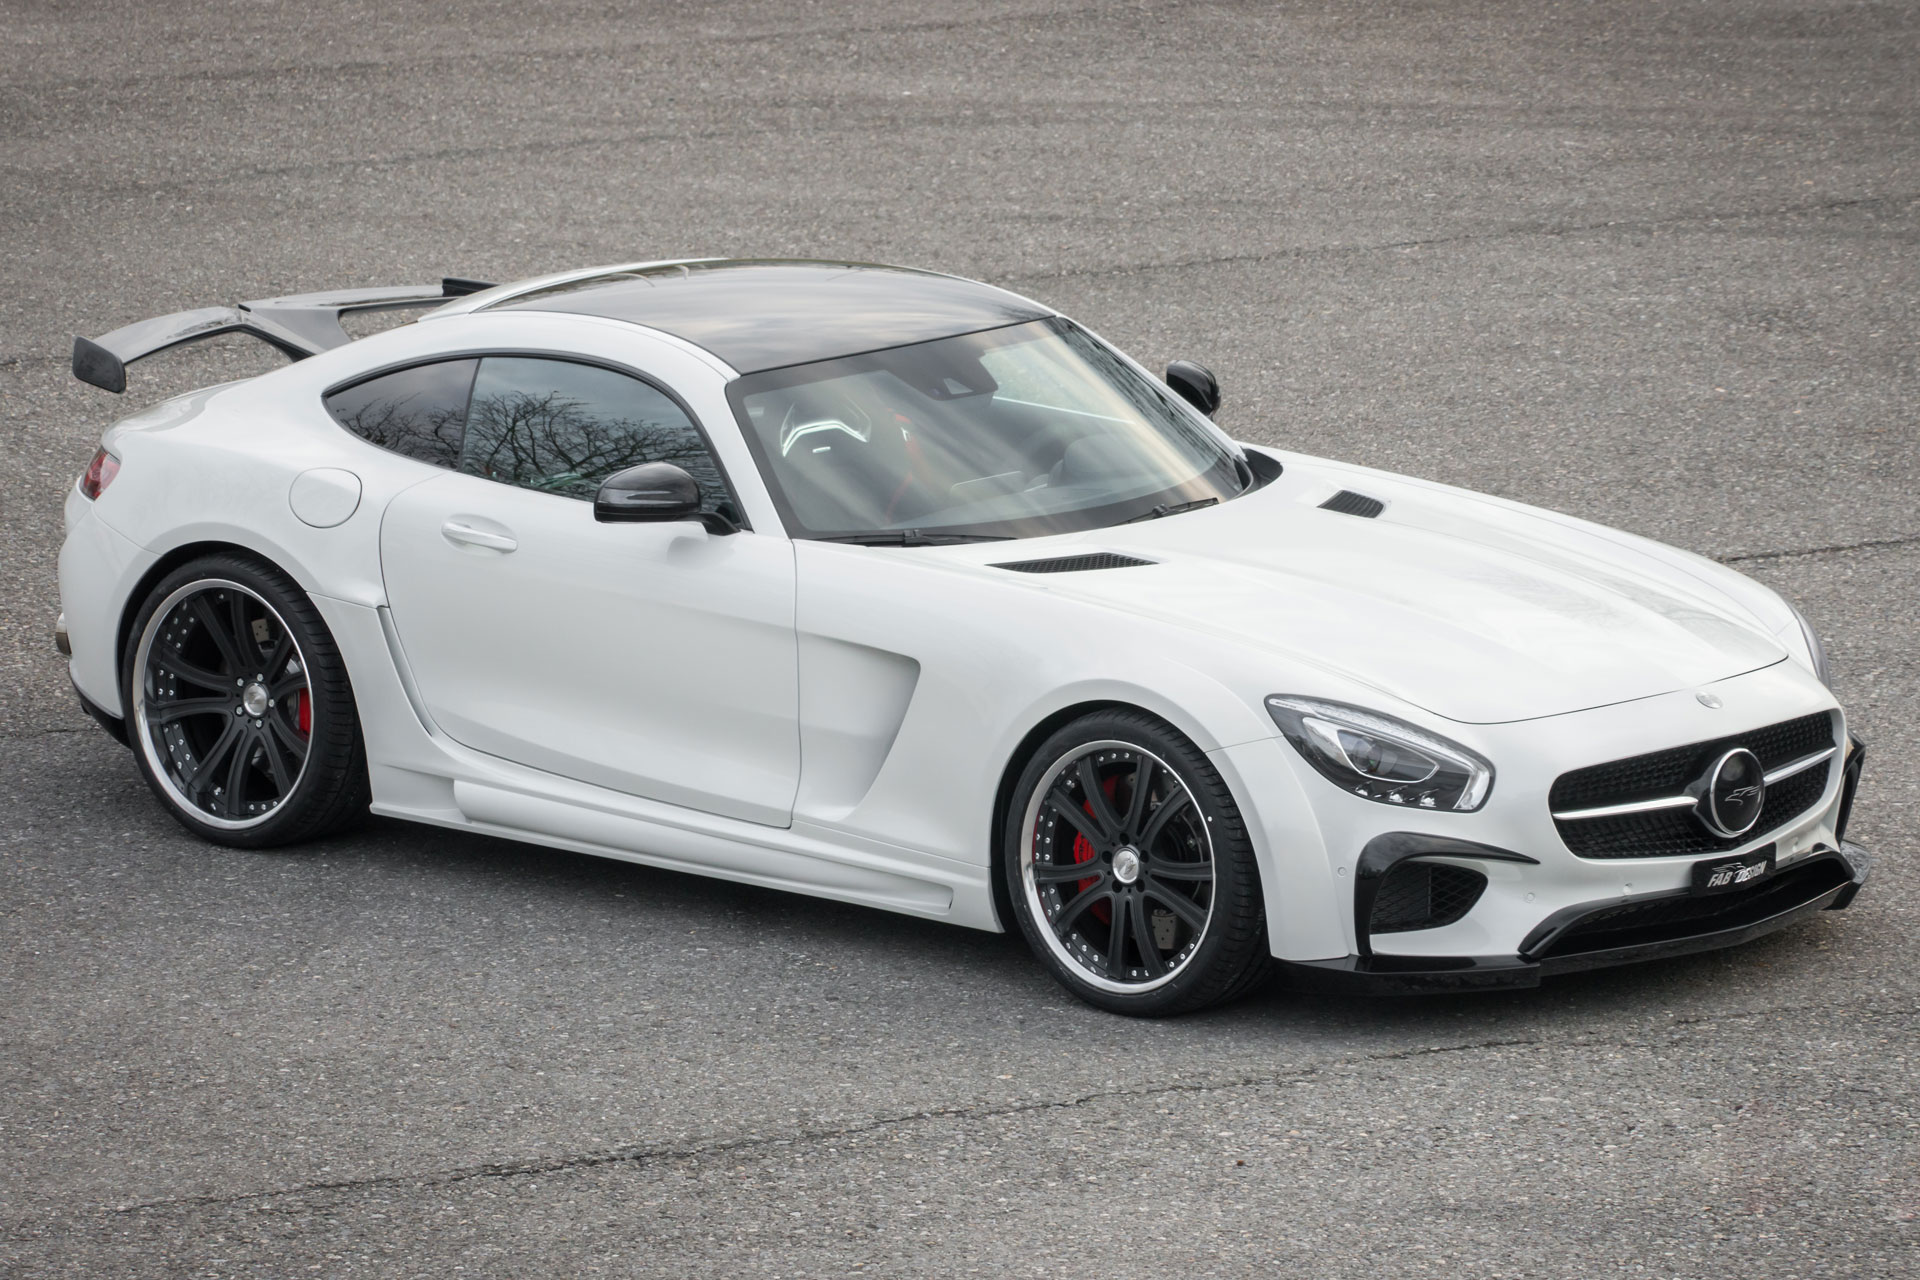 Mercedes Benz AMG GT/S - FAB Design